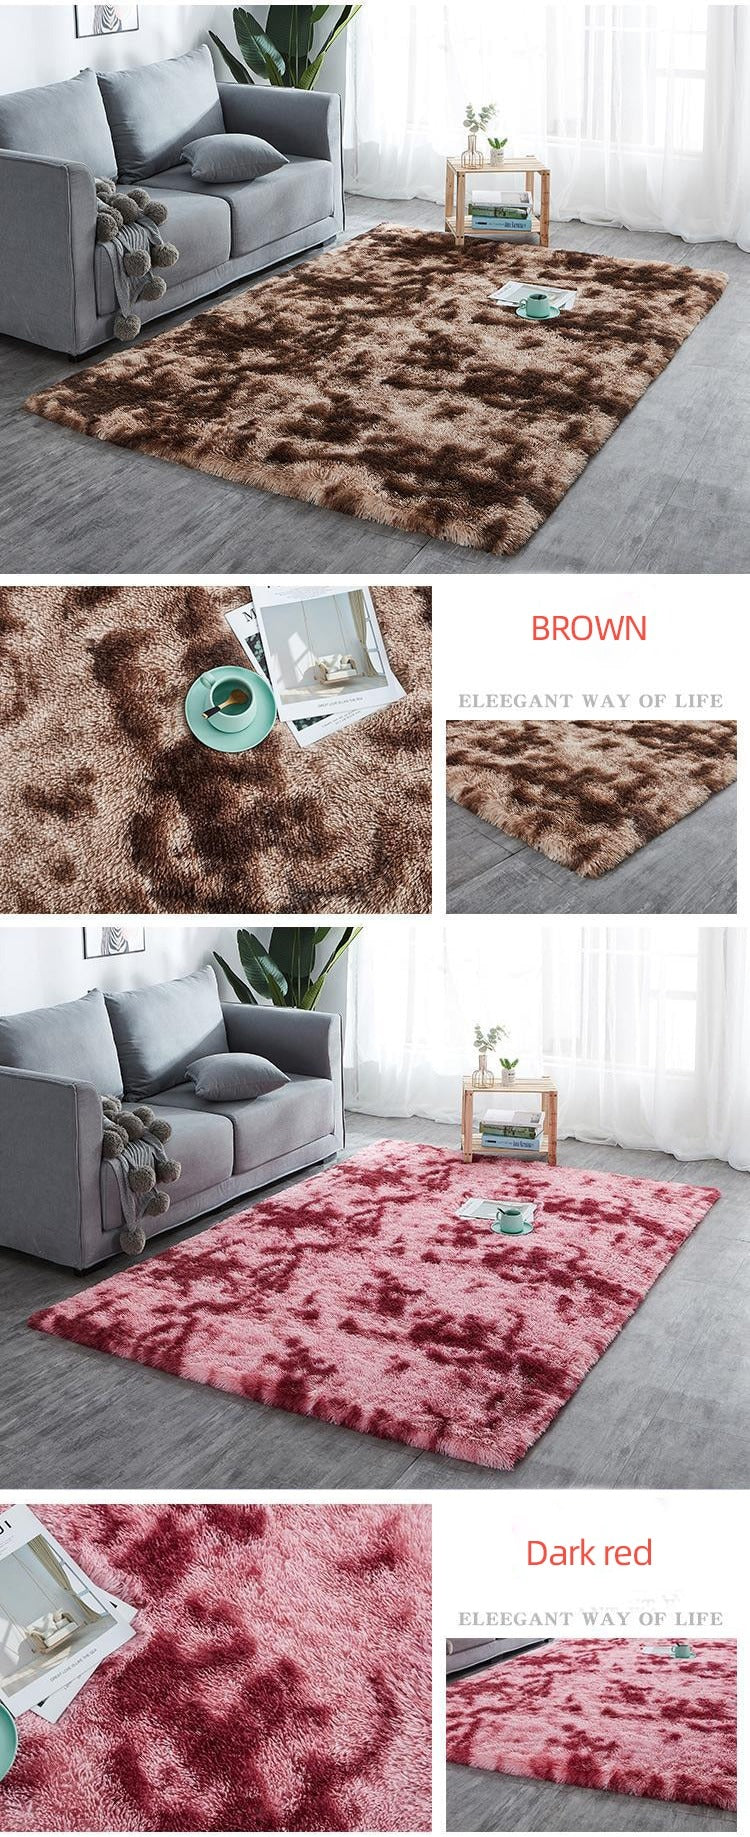 Soft brown and dark red rug